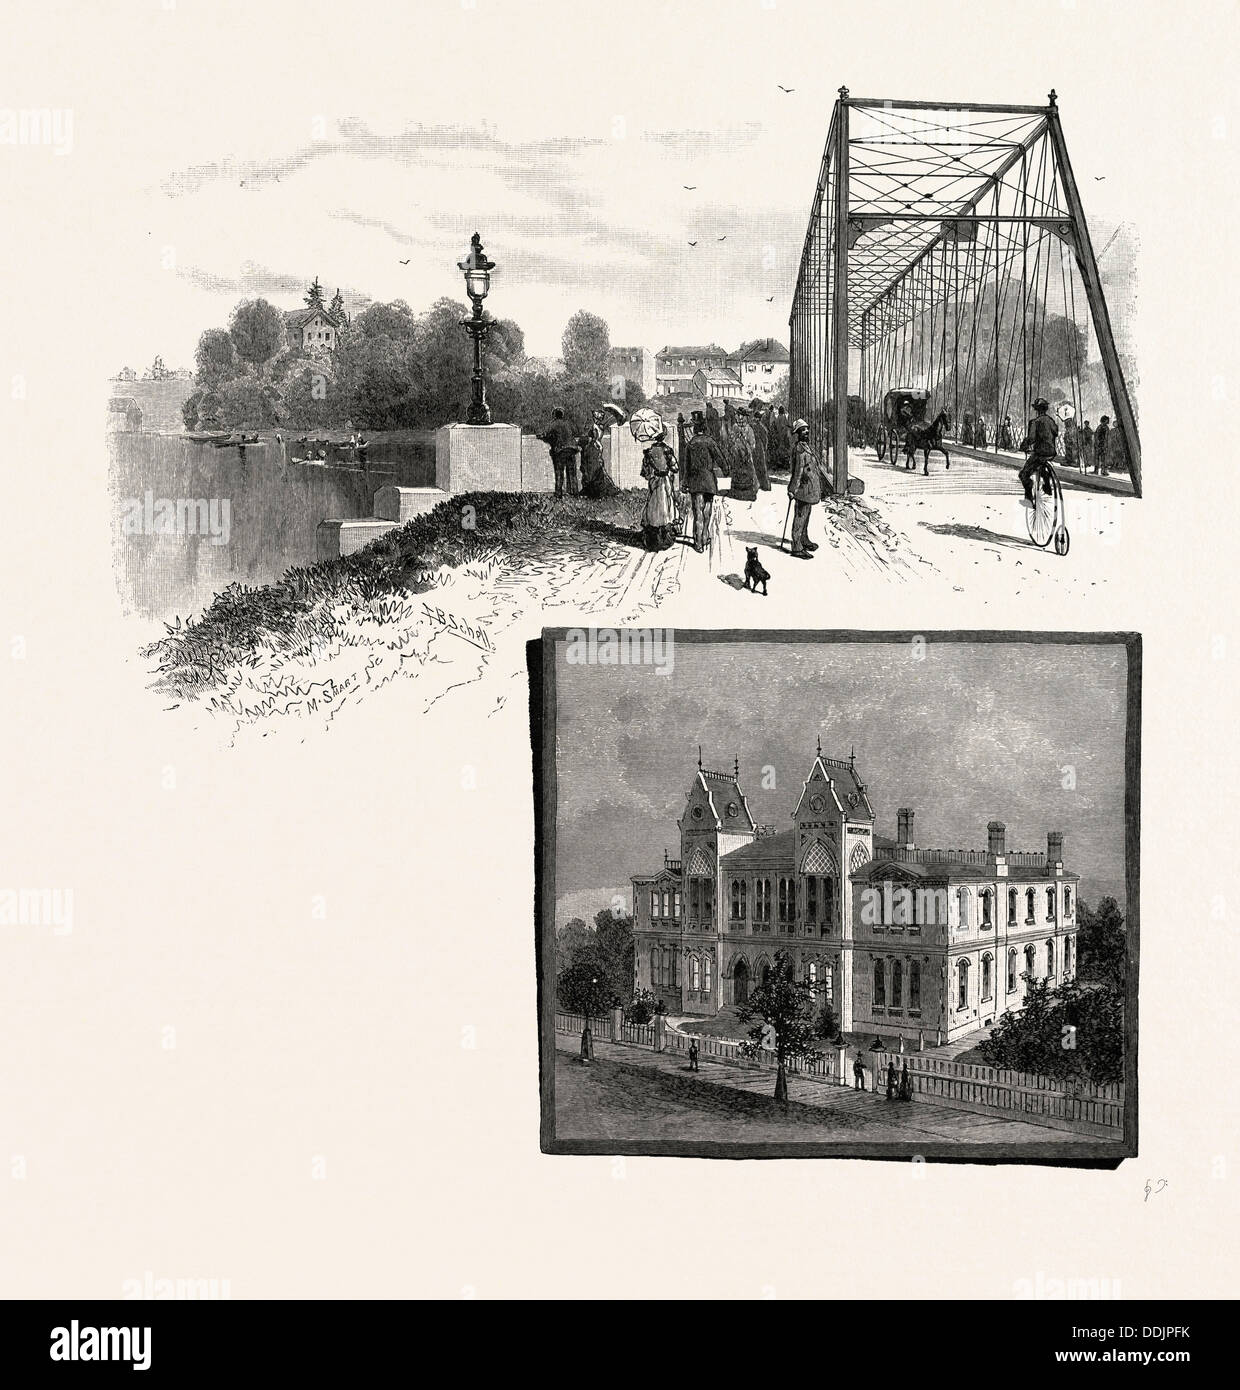 LORNE BRIDGE, BRANTFORD (TOP), COLLEGIATE INSTITUTE, BRANTFORD (BOTTOM), CANADA, NINETEENTH CENTURY ENGRAVING - Stock Image